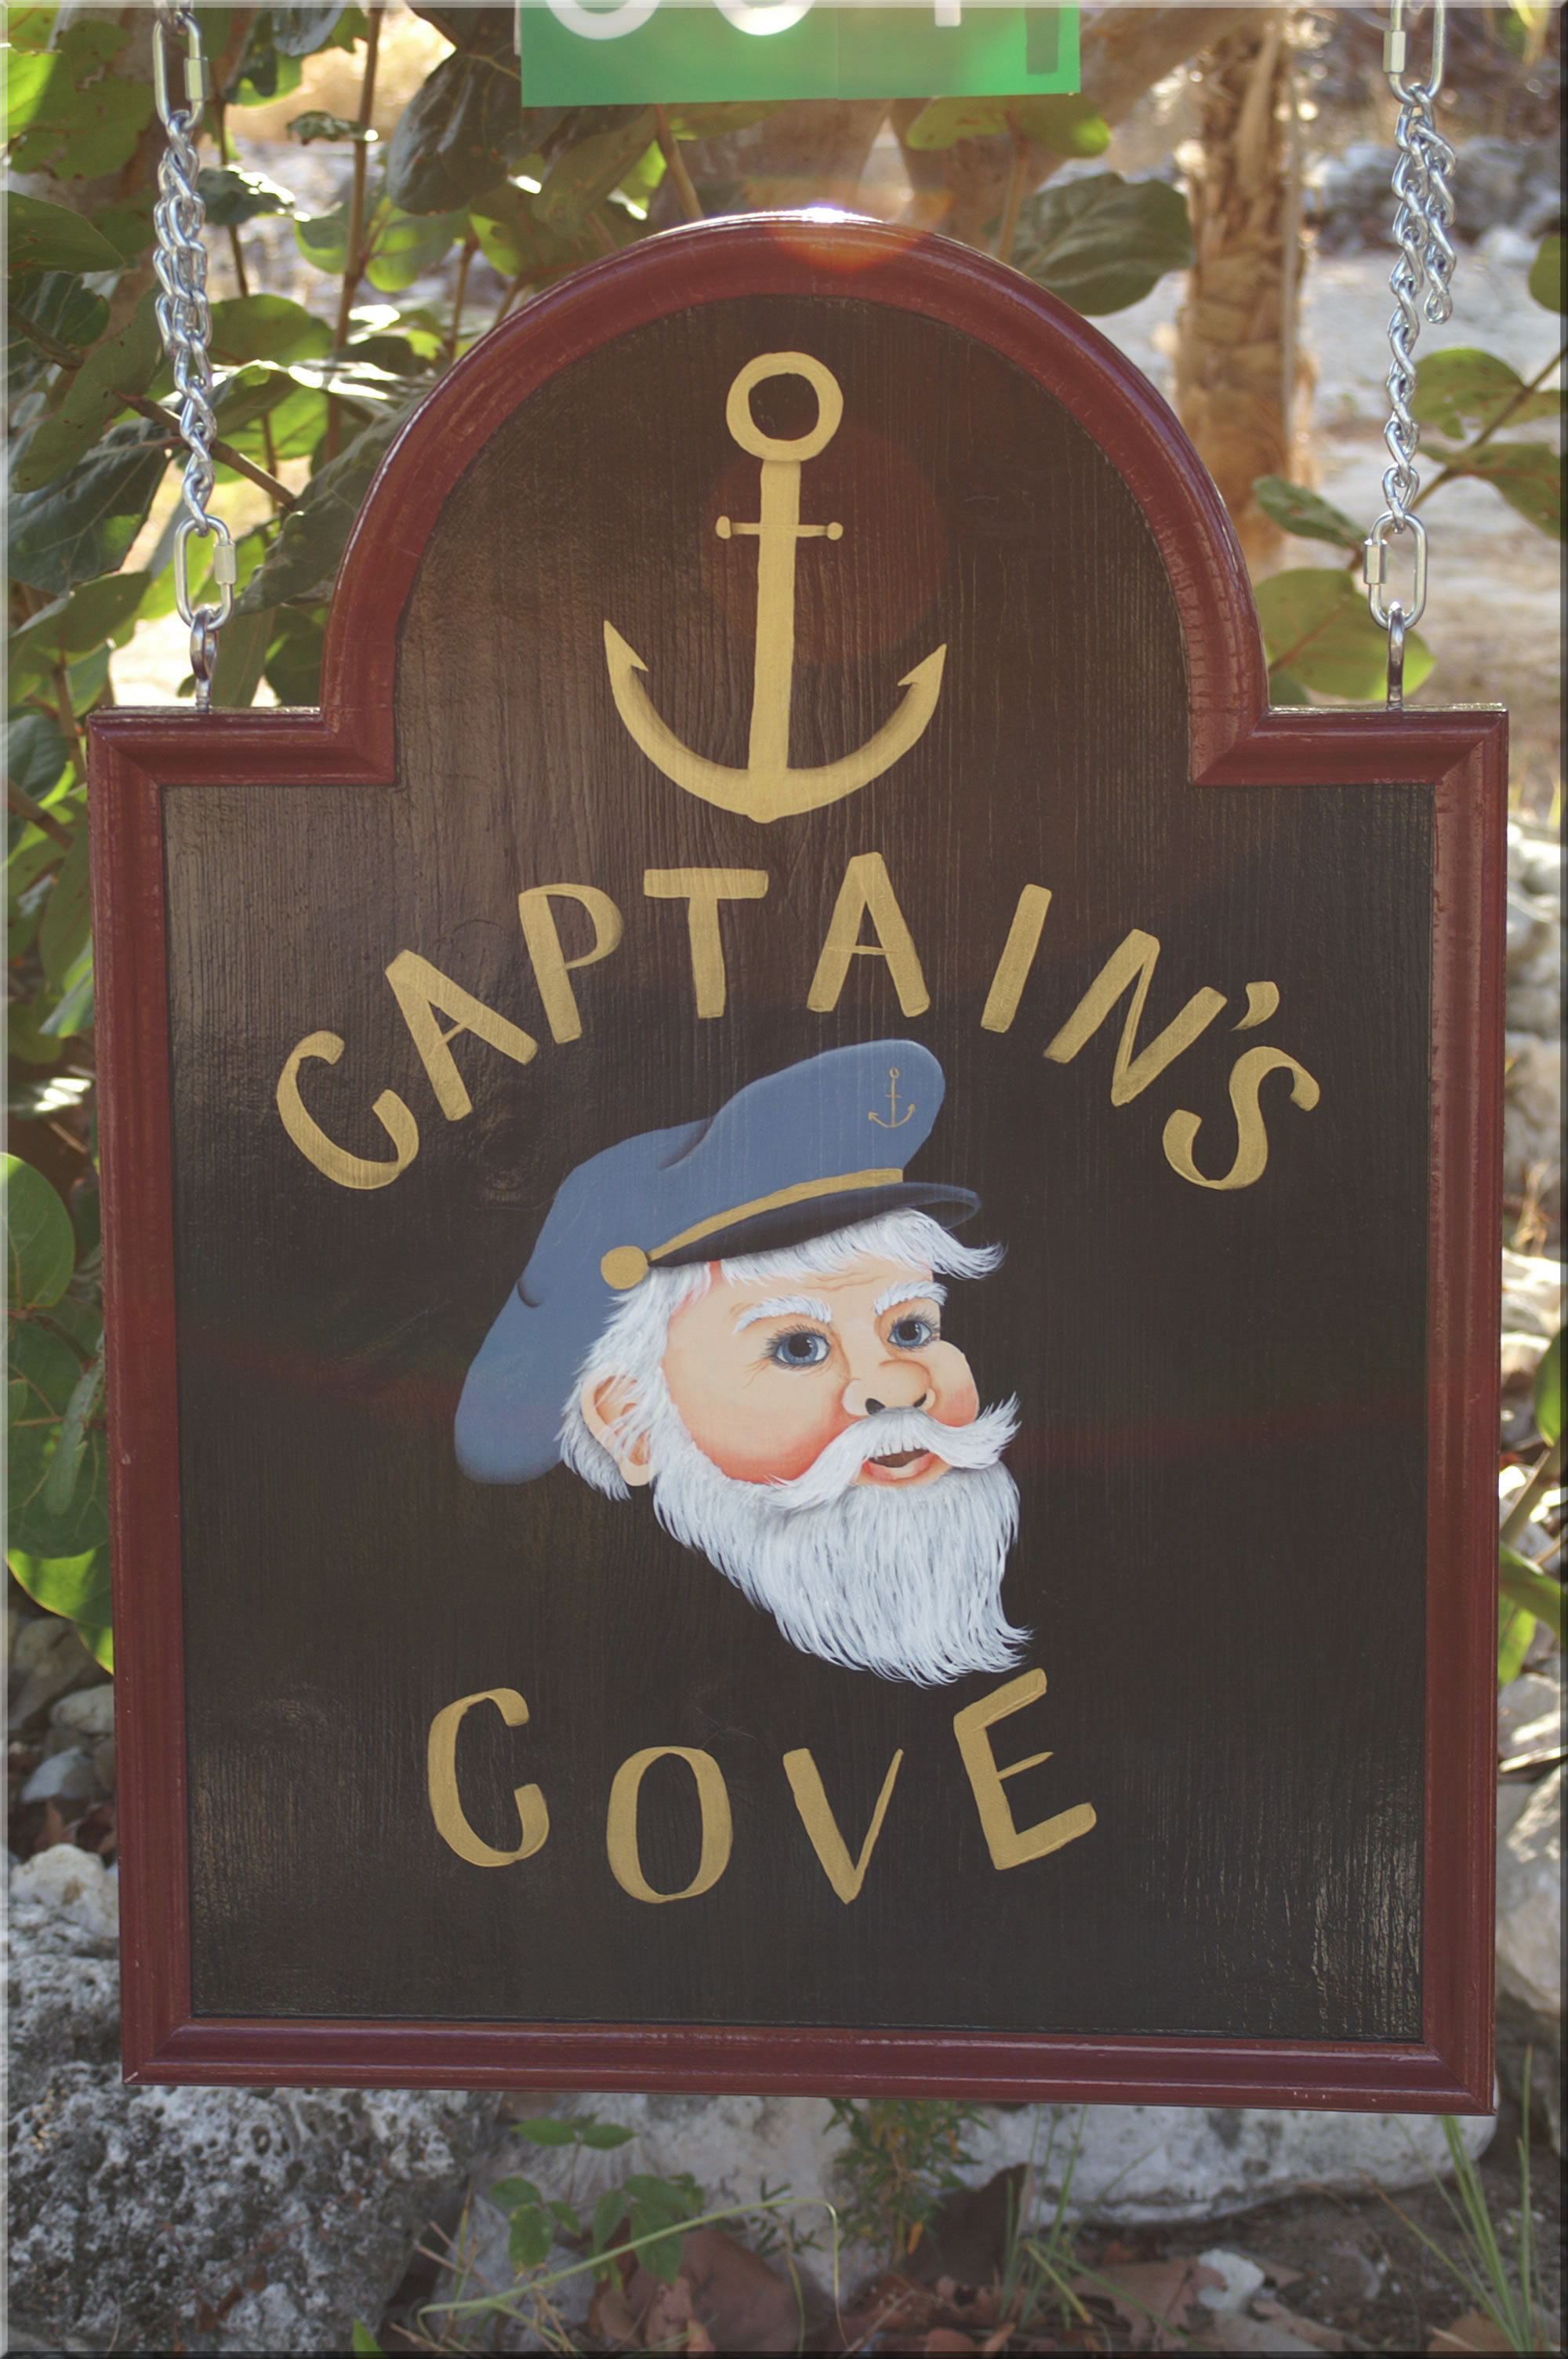 Captain's Cove Sign